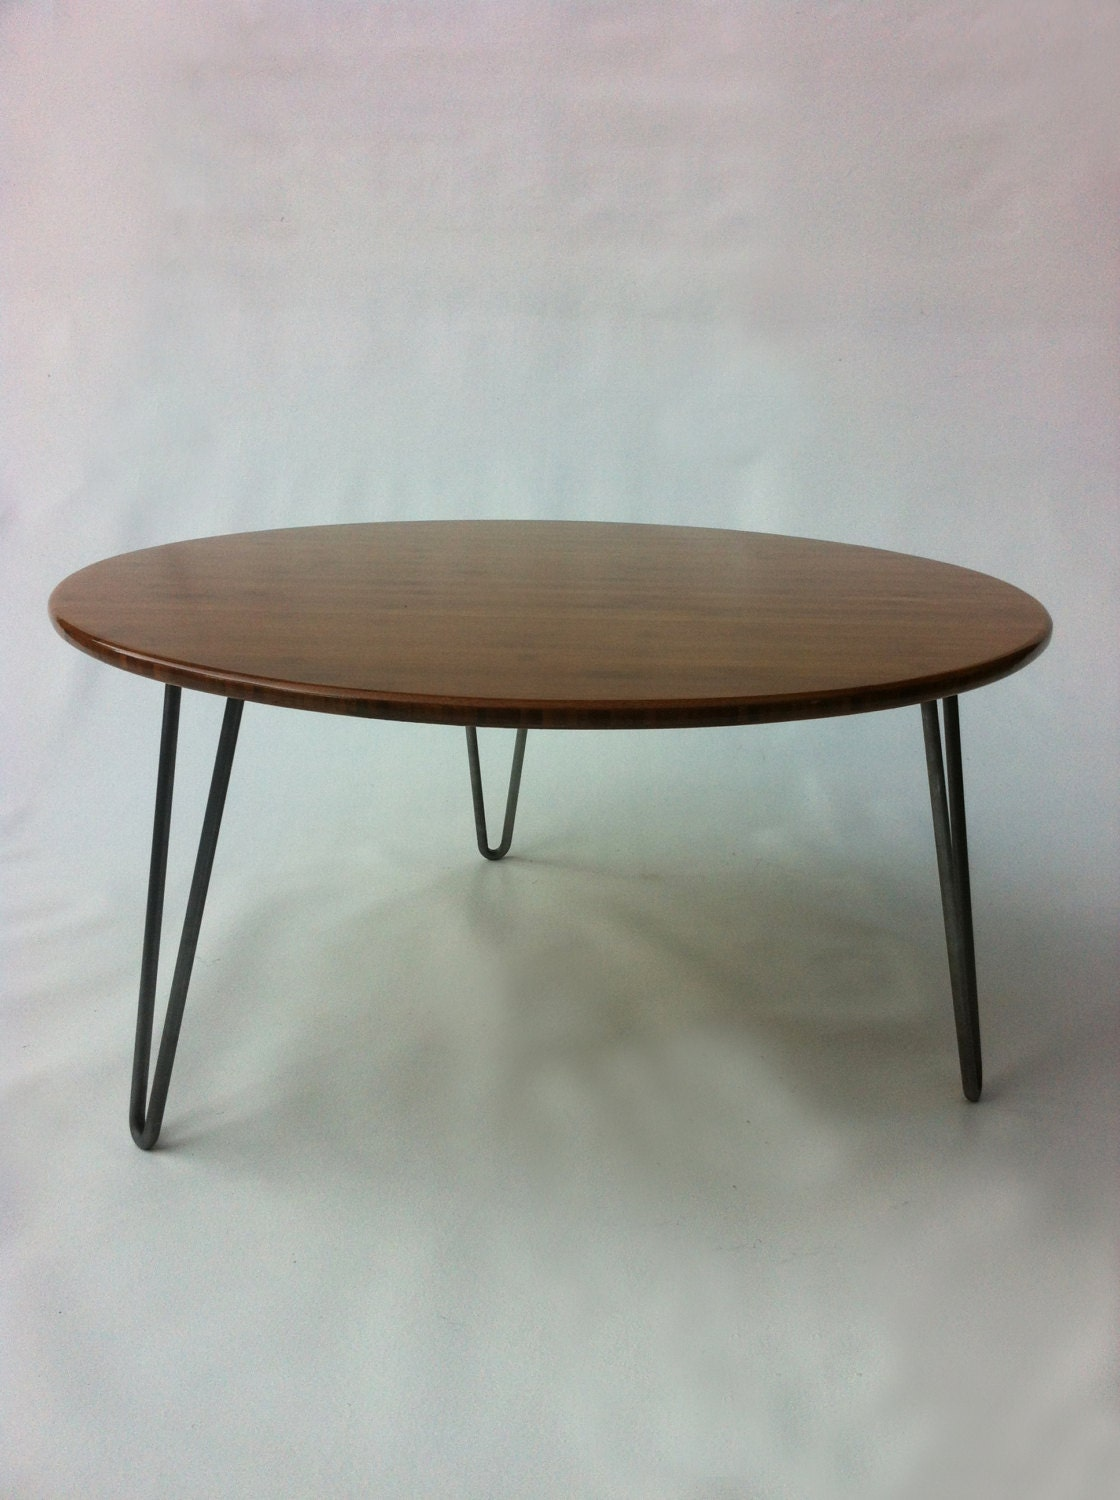 34 Round Mid Century Modern Coffee Table Atomic Eames Etsy